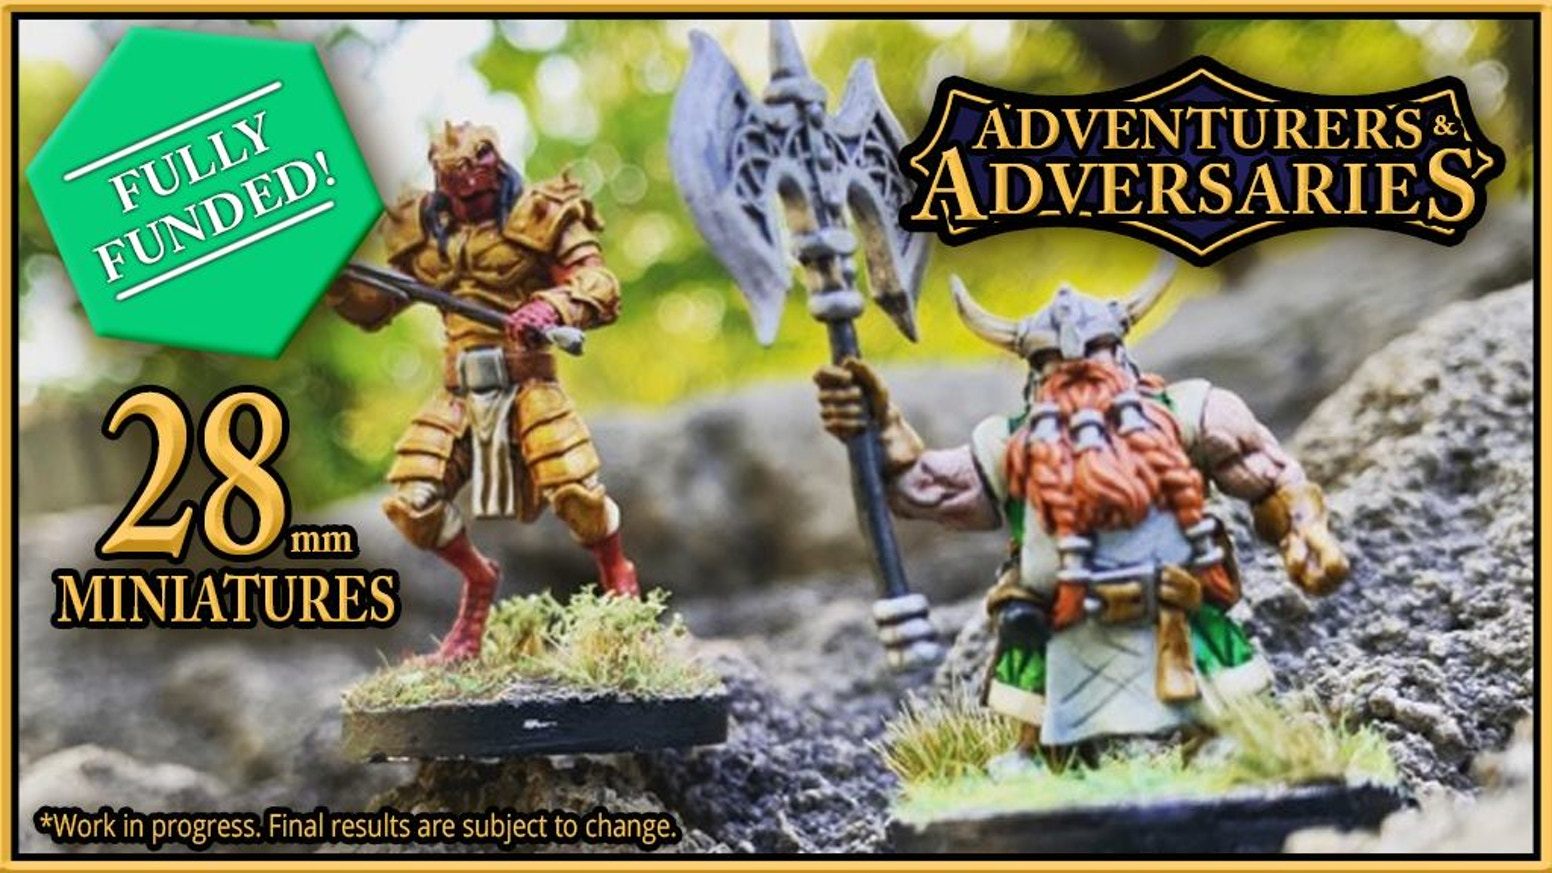 Adventurers & Adversaries: High Quality Resin Miniatures with Options Great for DND, Pathfinder and other Fantasy RPGs and Dice!